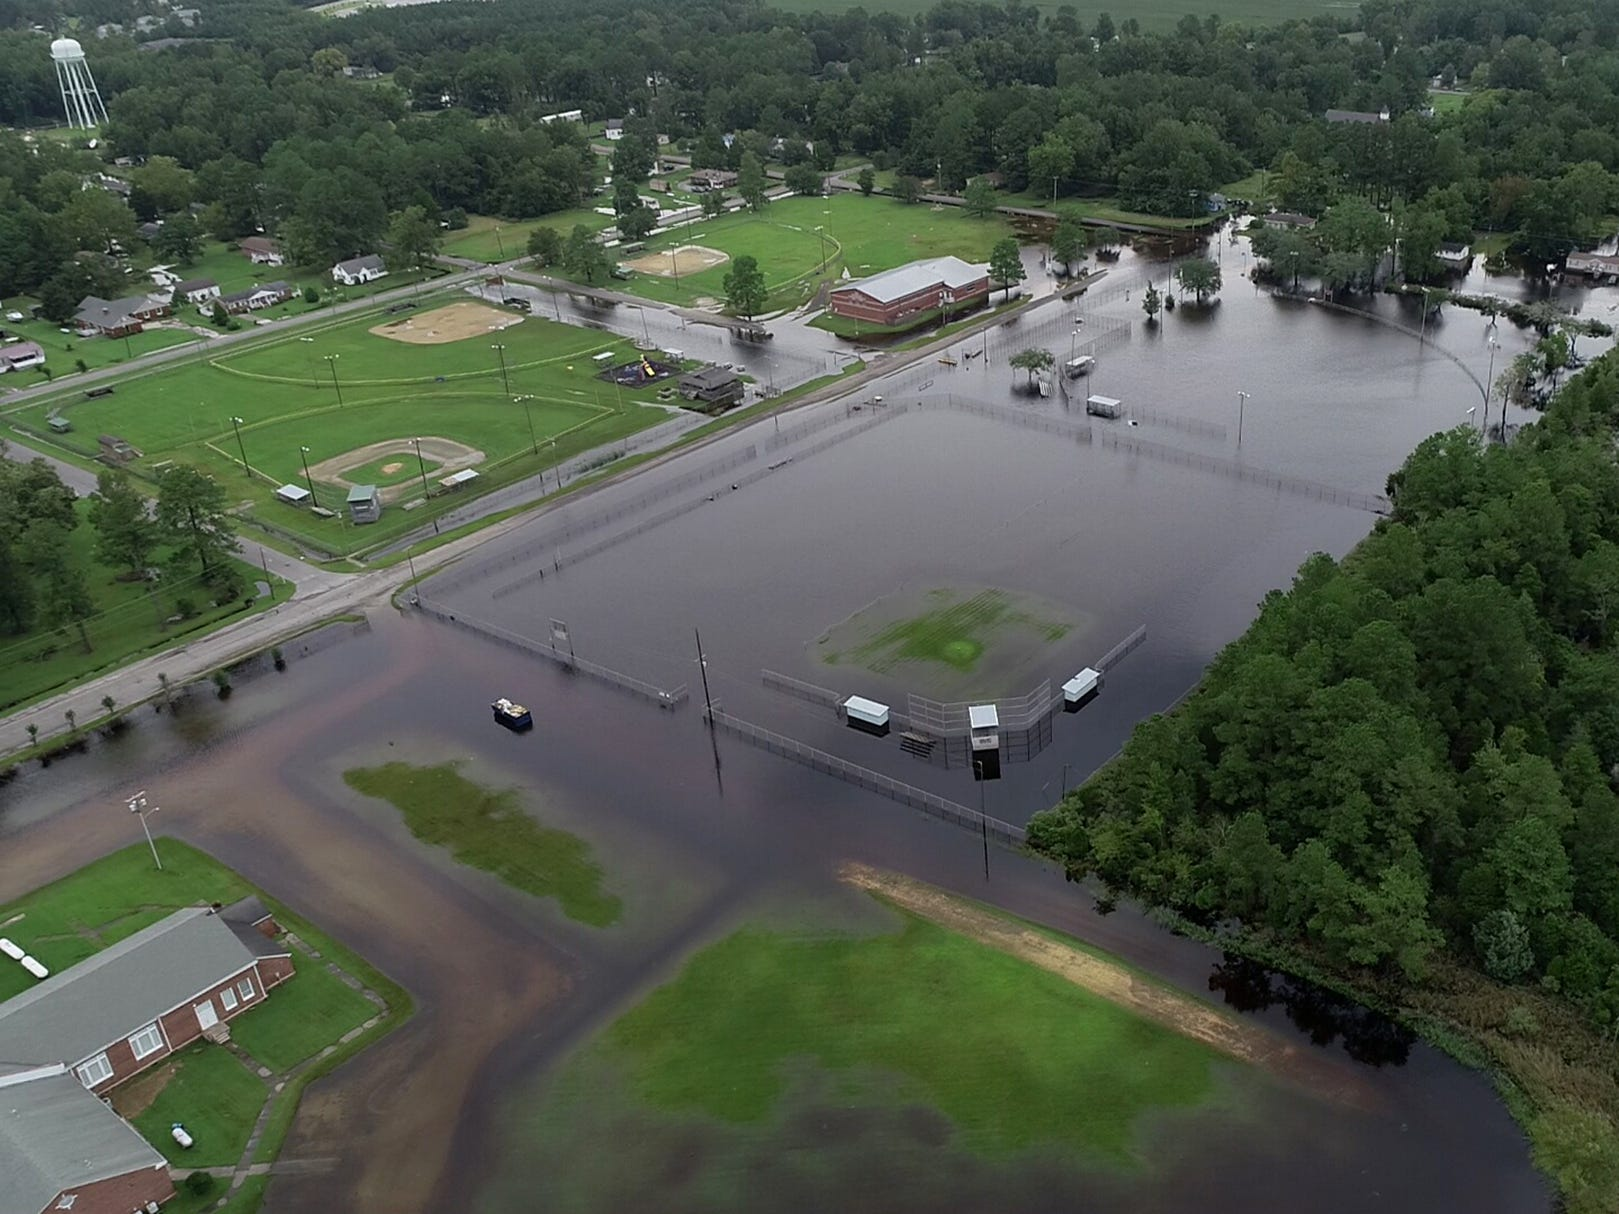 A Drone photo shows flooding in Belhaven, N.C. on Saturday, Sept. 15, 2018.